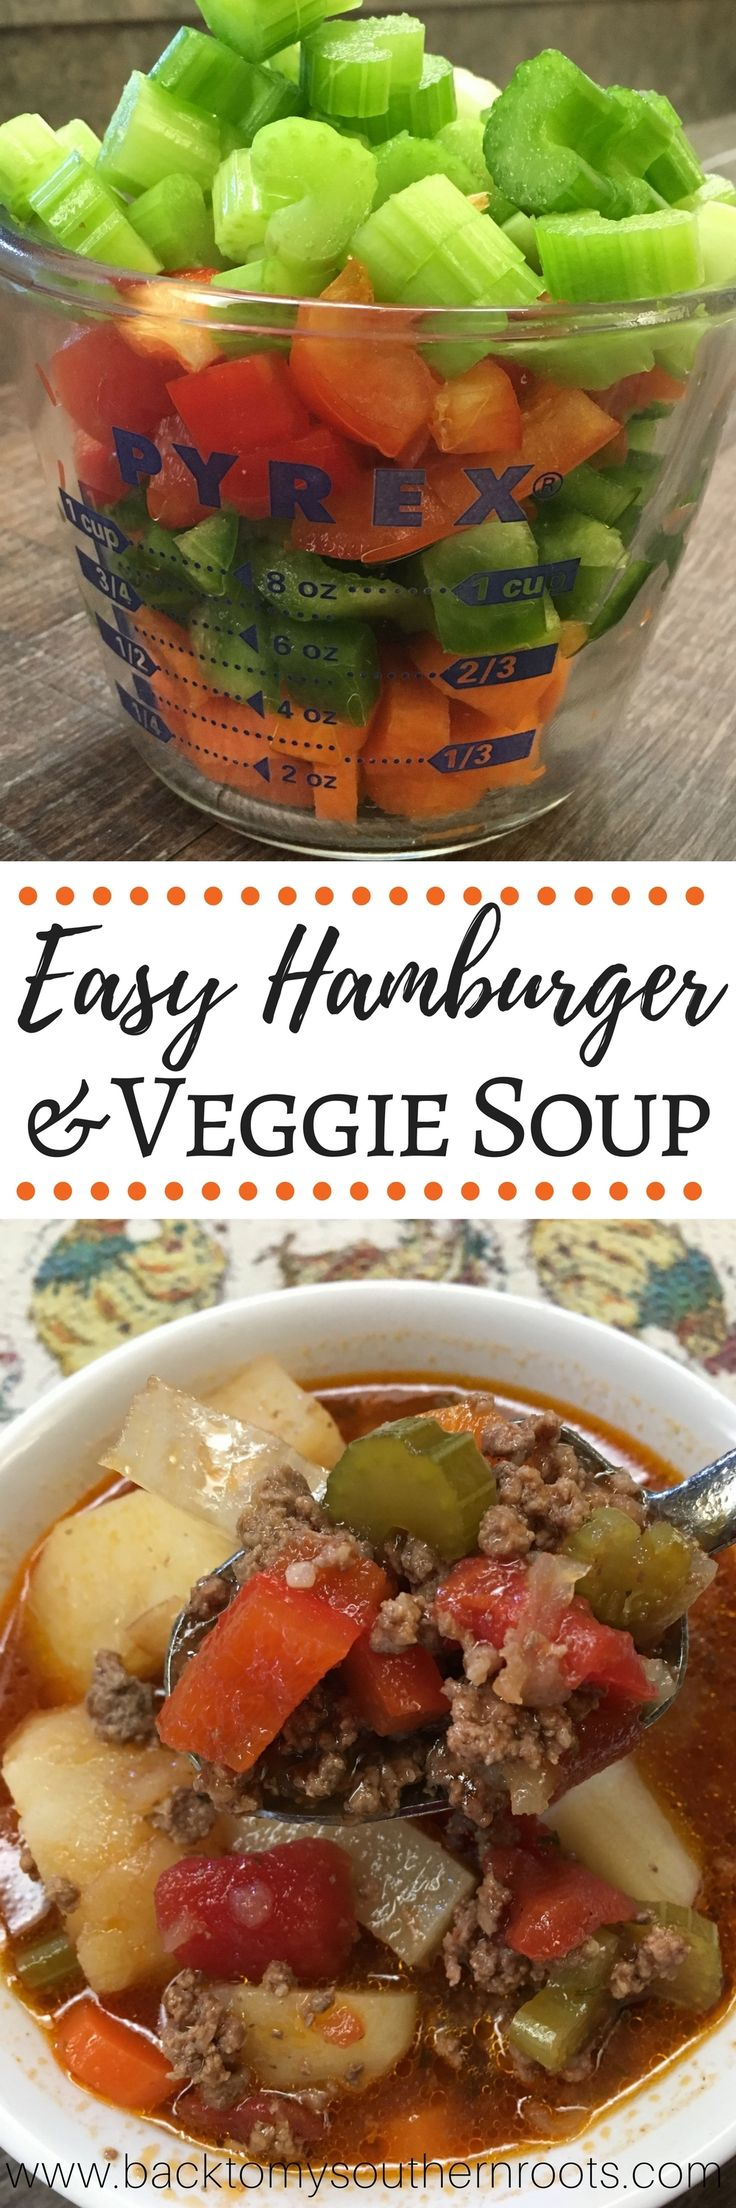 You are going to love this hamburger and vegetable soup. It's the perfect soup recipe to warm you up in the cold weather and it's easy to make. The hamburger and veggie soup recipe makes a large pot that will feed a family of 8, or you'll have plenty of leftovers. This is a very inexpensive, cheap meal that costs less than $15. via @juliepollittbacktomysouthernroots